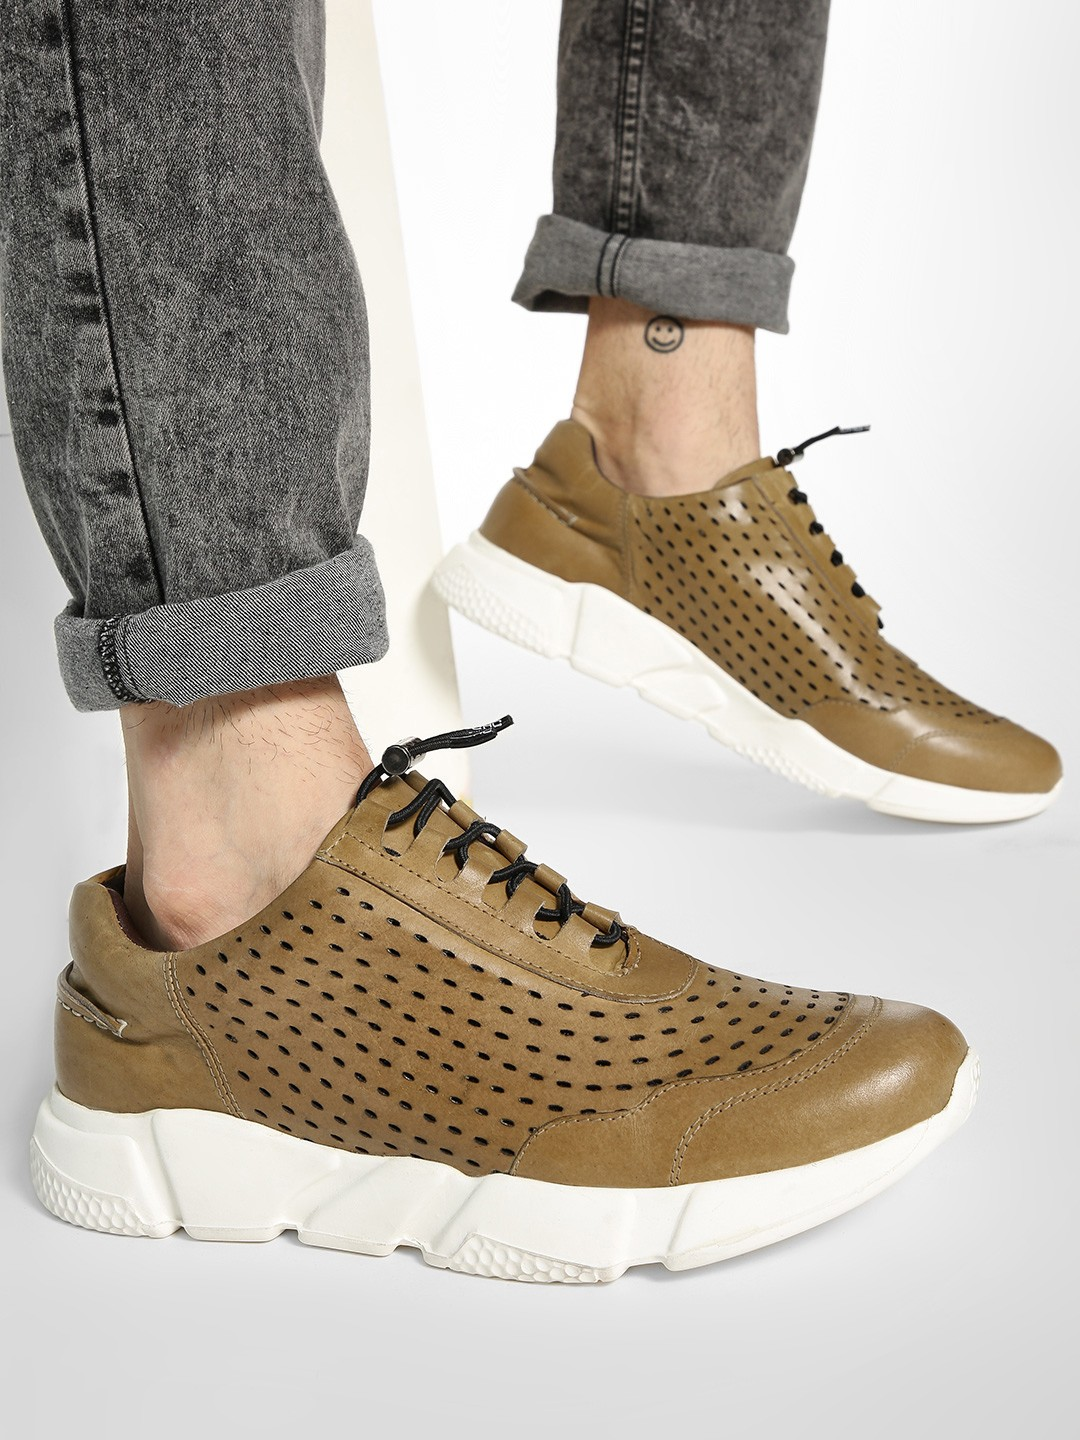 YOHO Brown Lazer Cut Cord Feed Leather Sneakers 1